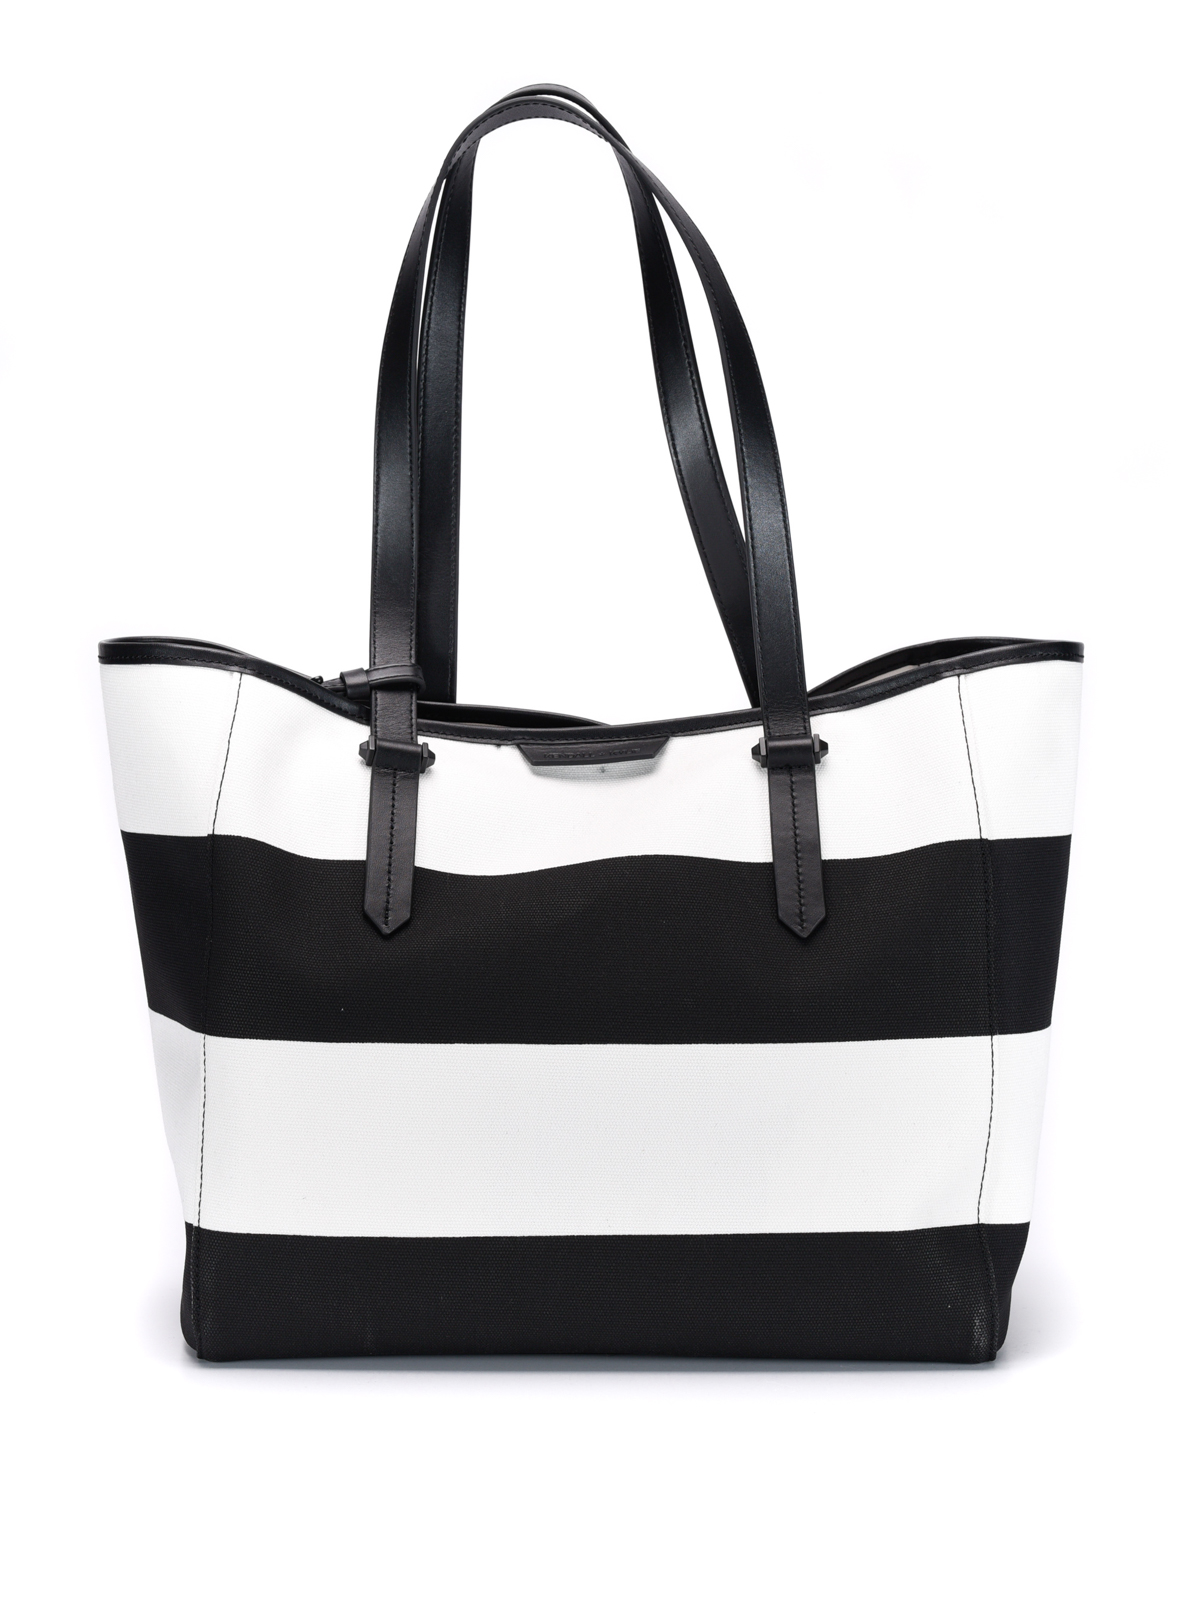 shelly canvas tote bag by kendall kylie totes bags ikrix. Black Bedroom Furniture Sets. Home Design Ideas